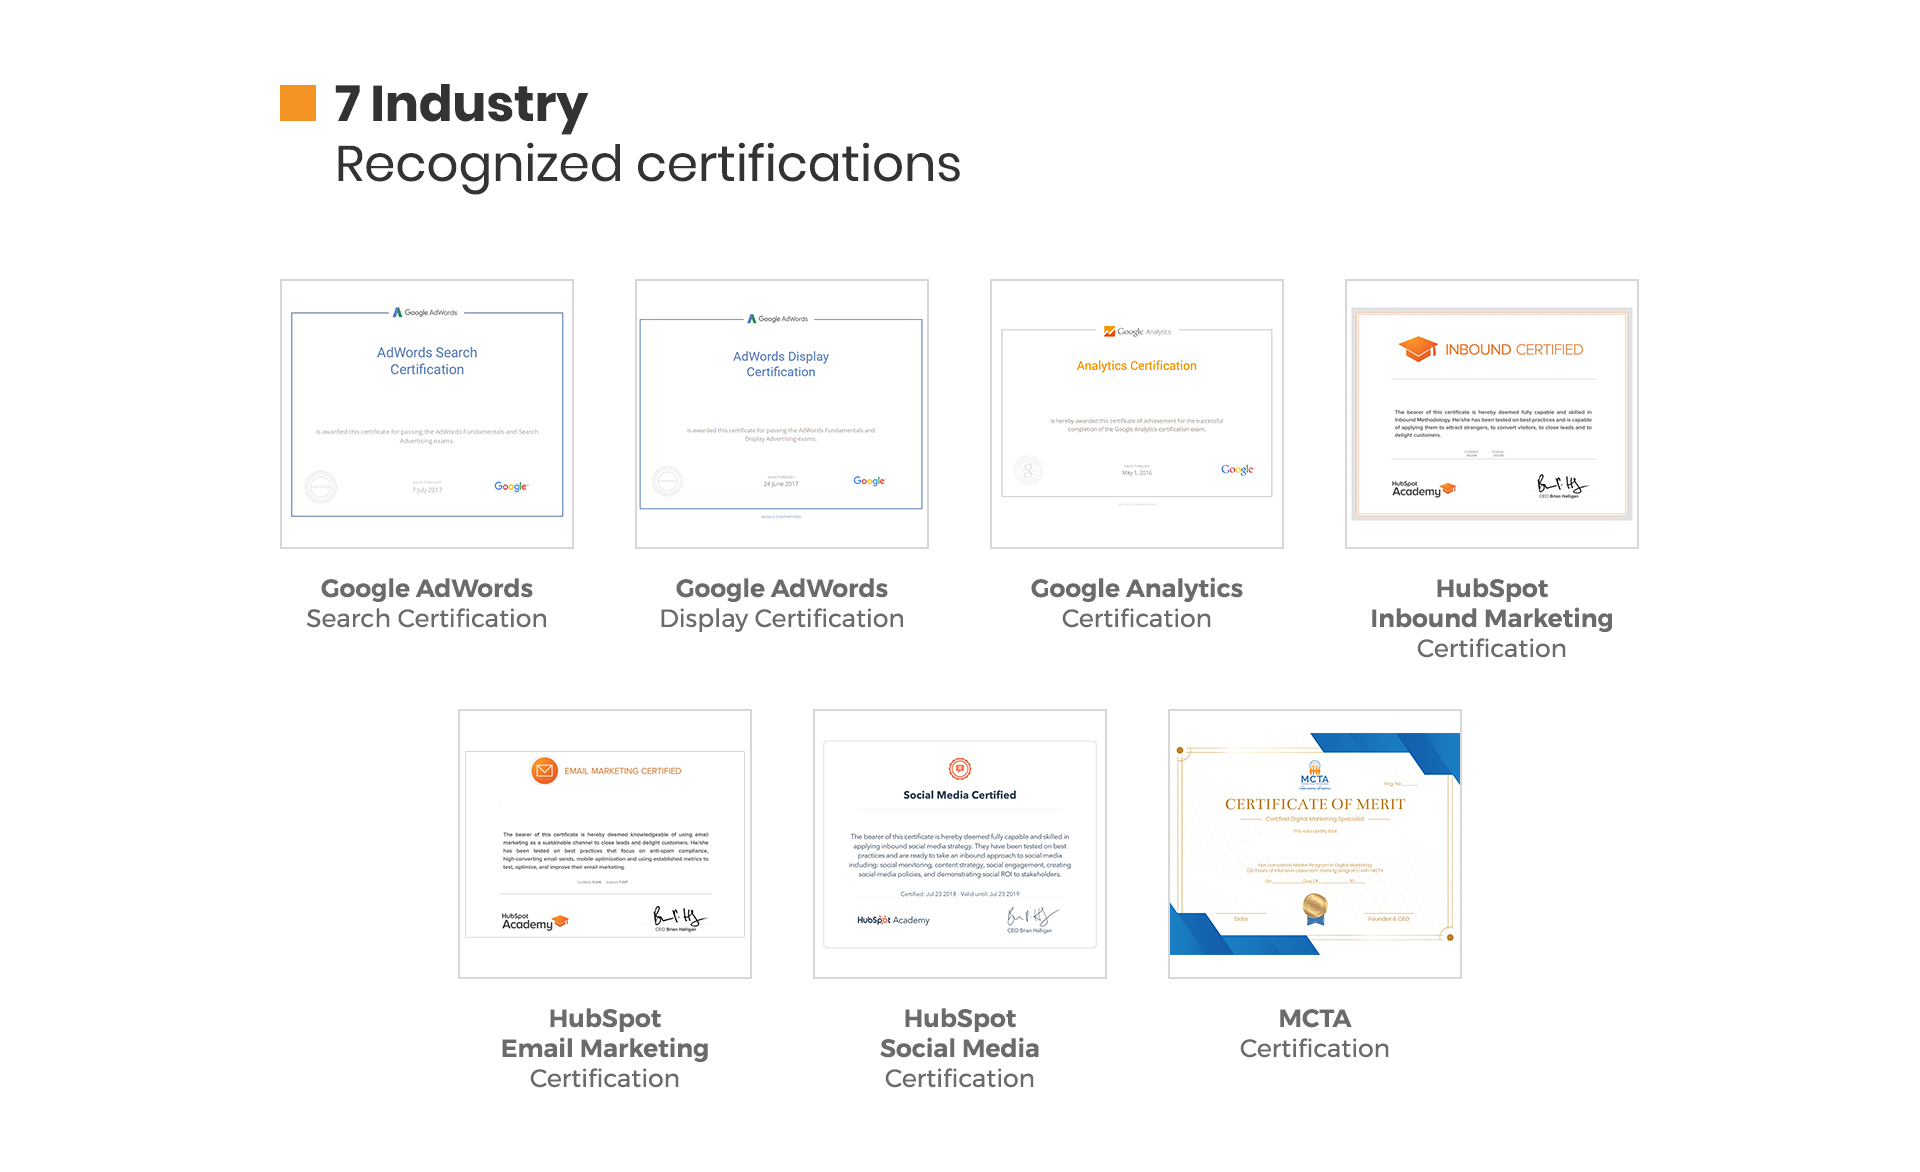 Masters Program in Digital Marketing Course Certificates Image